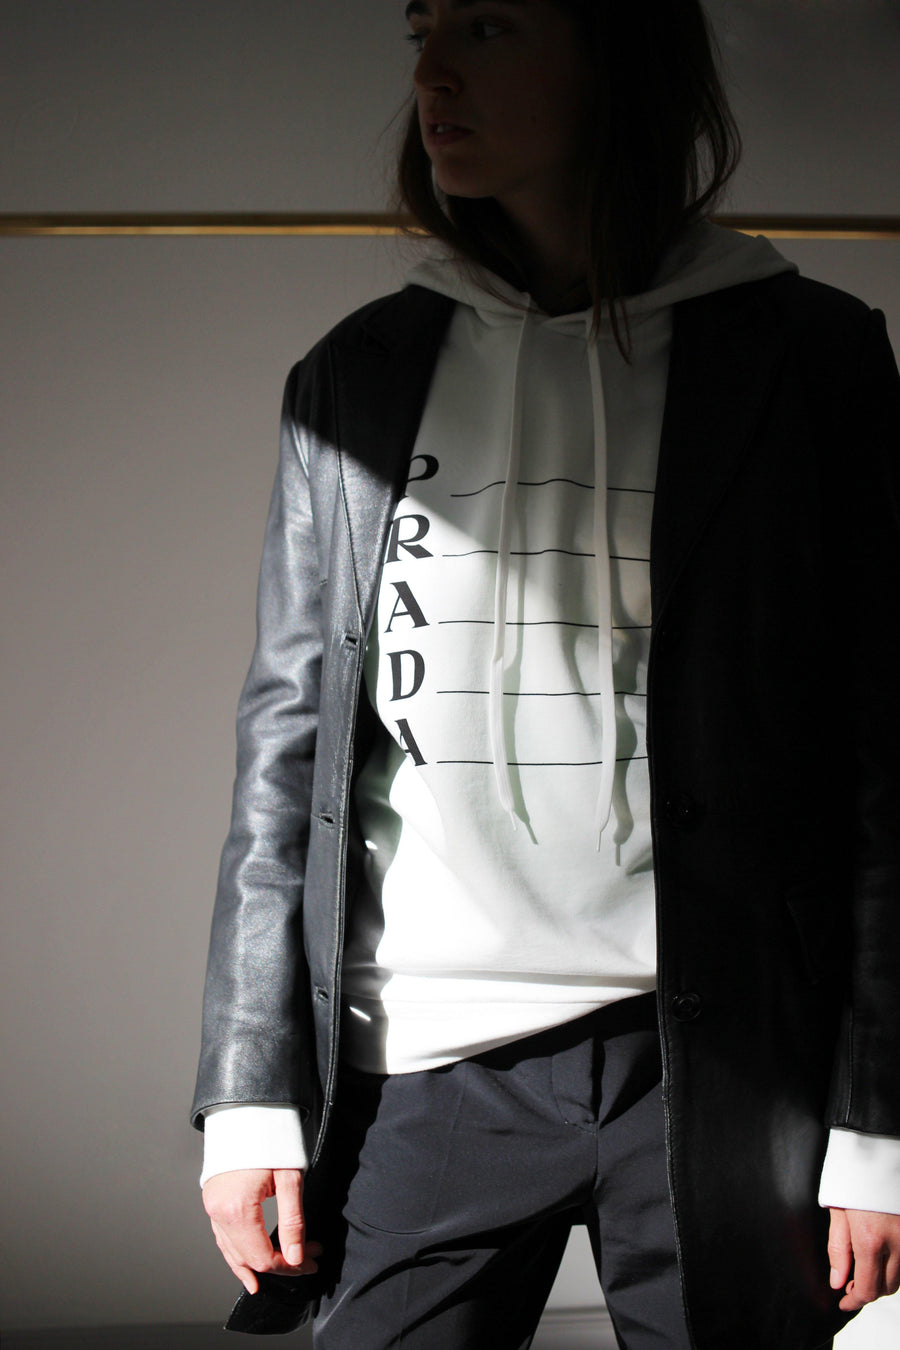 PRADA Hooded Sweatshirt - The Good Store Berlin